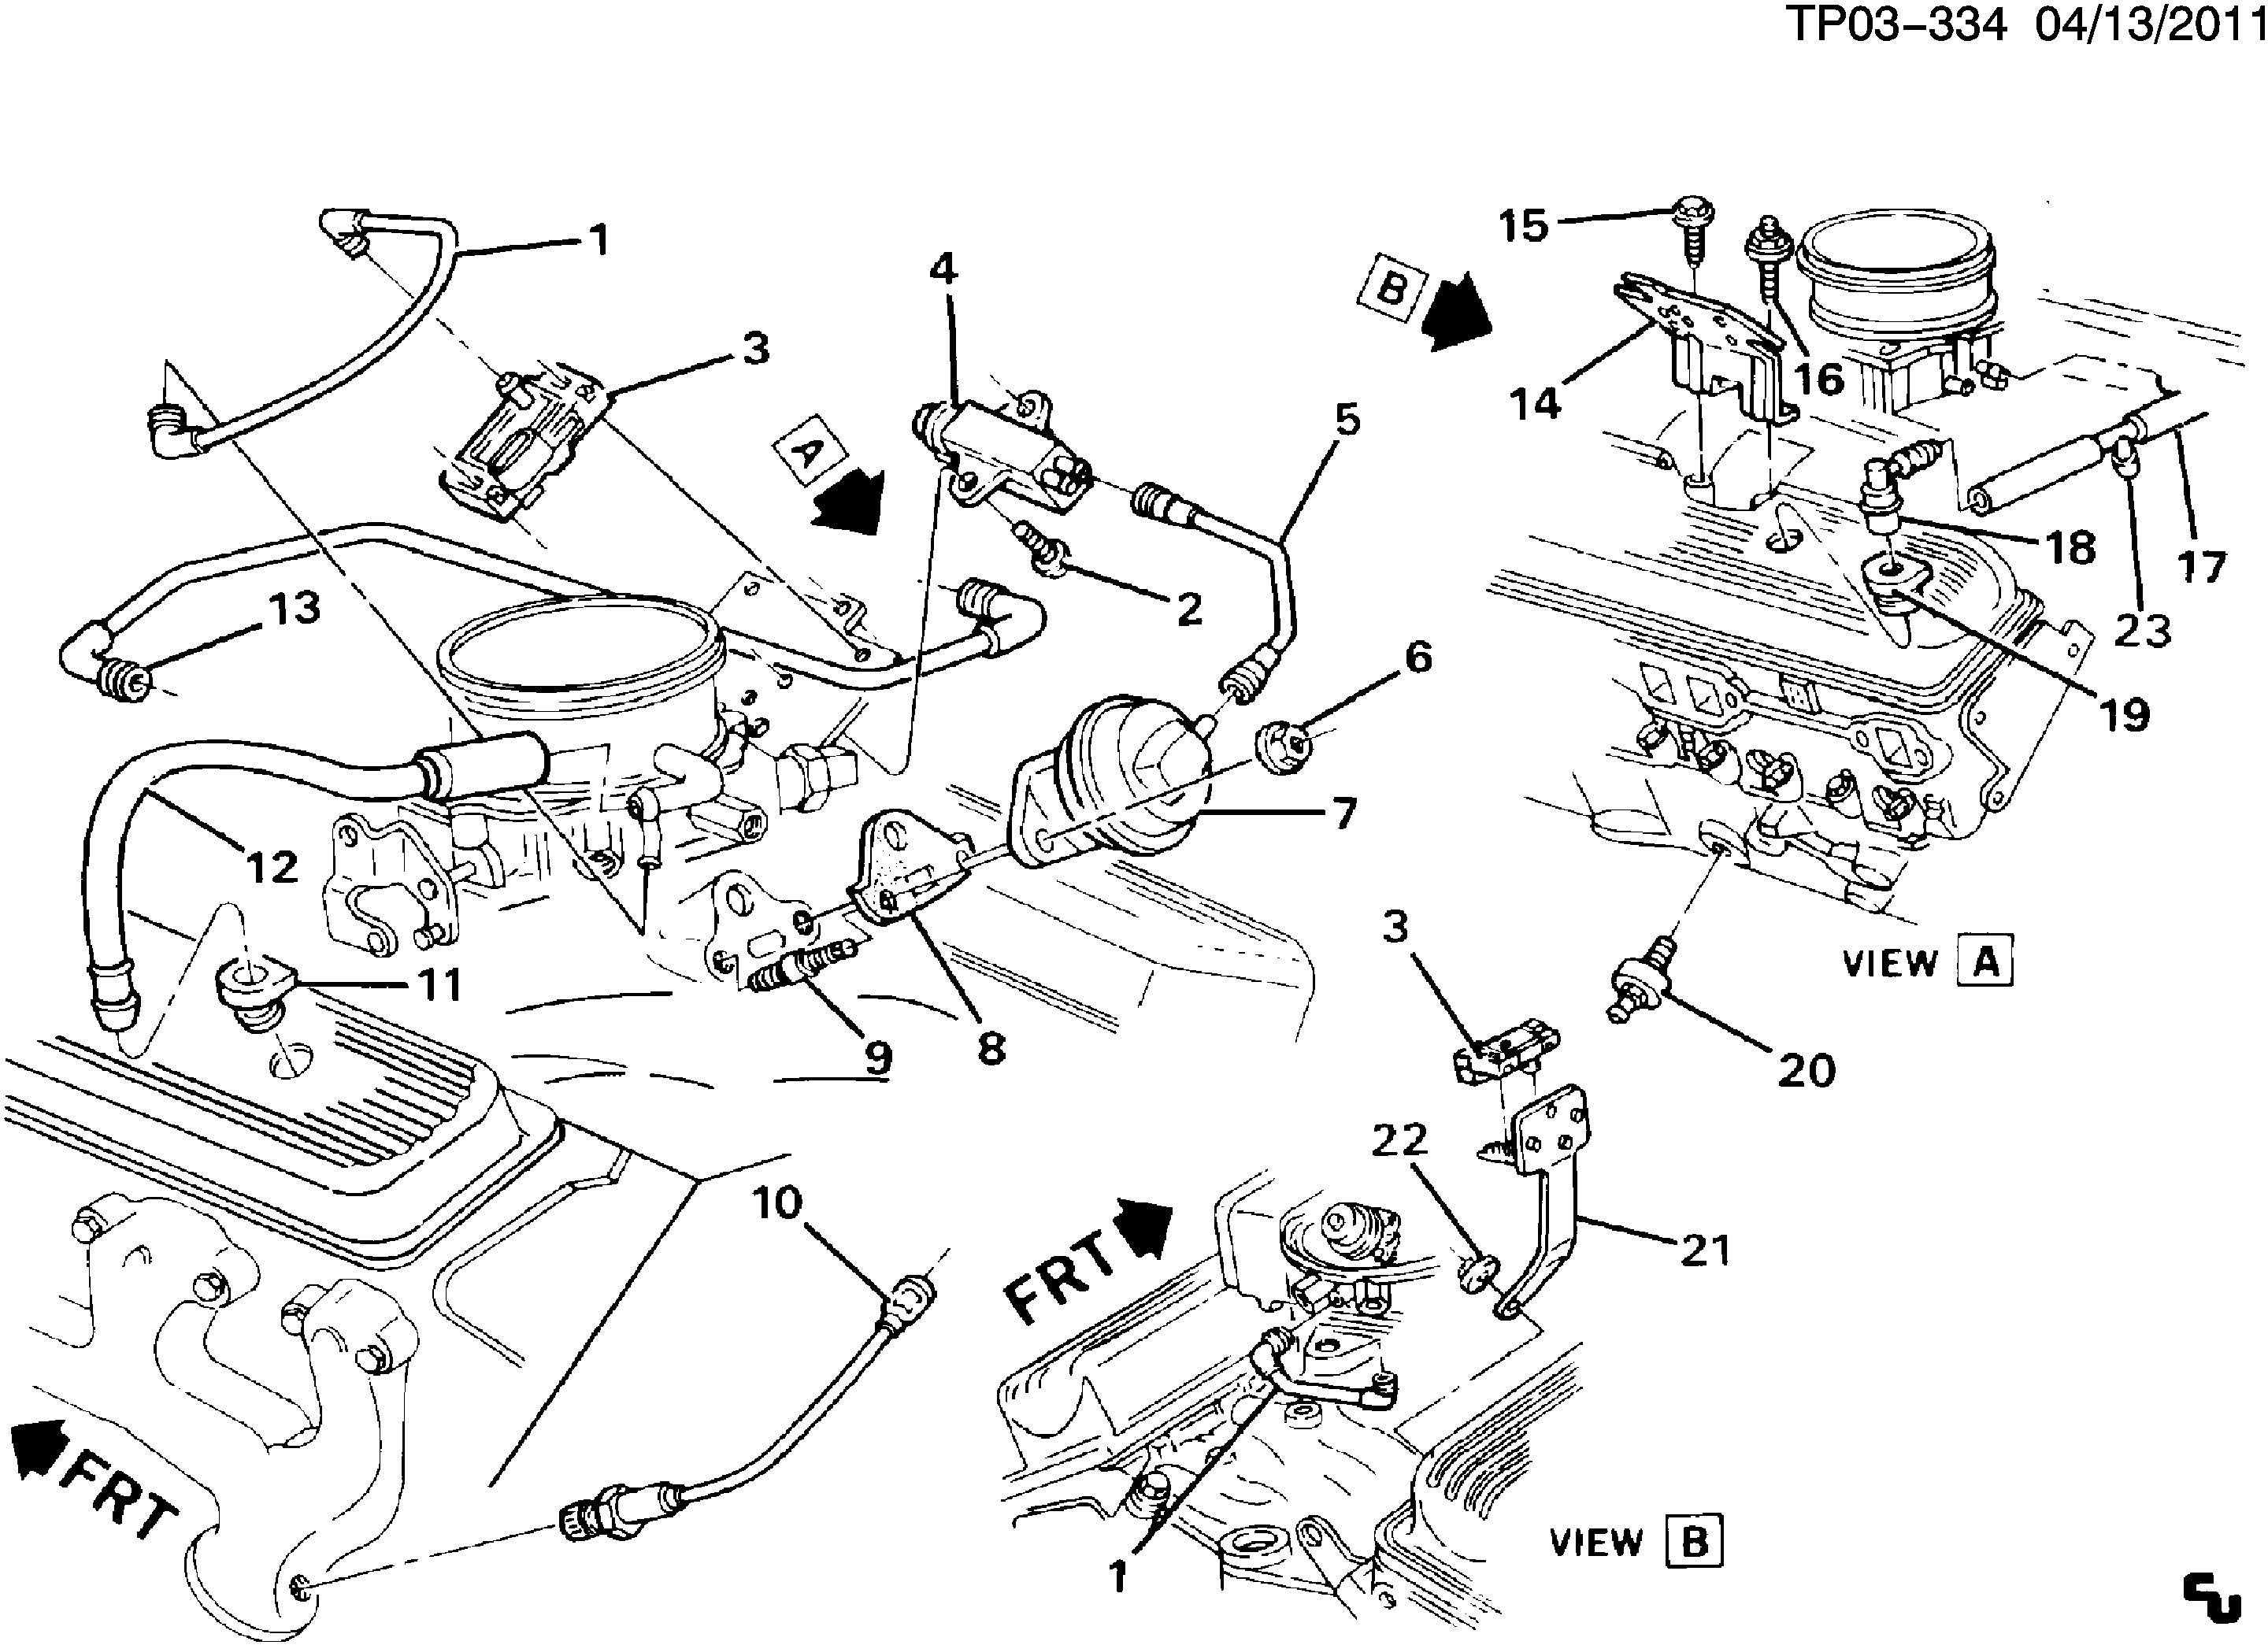 1998 Chevrolet 350 Engine Diagram Free Wiring For You Chevy Schematic U2022 Drawings 305